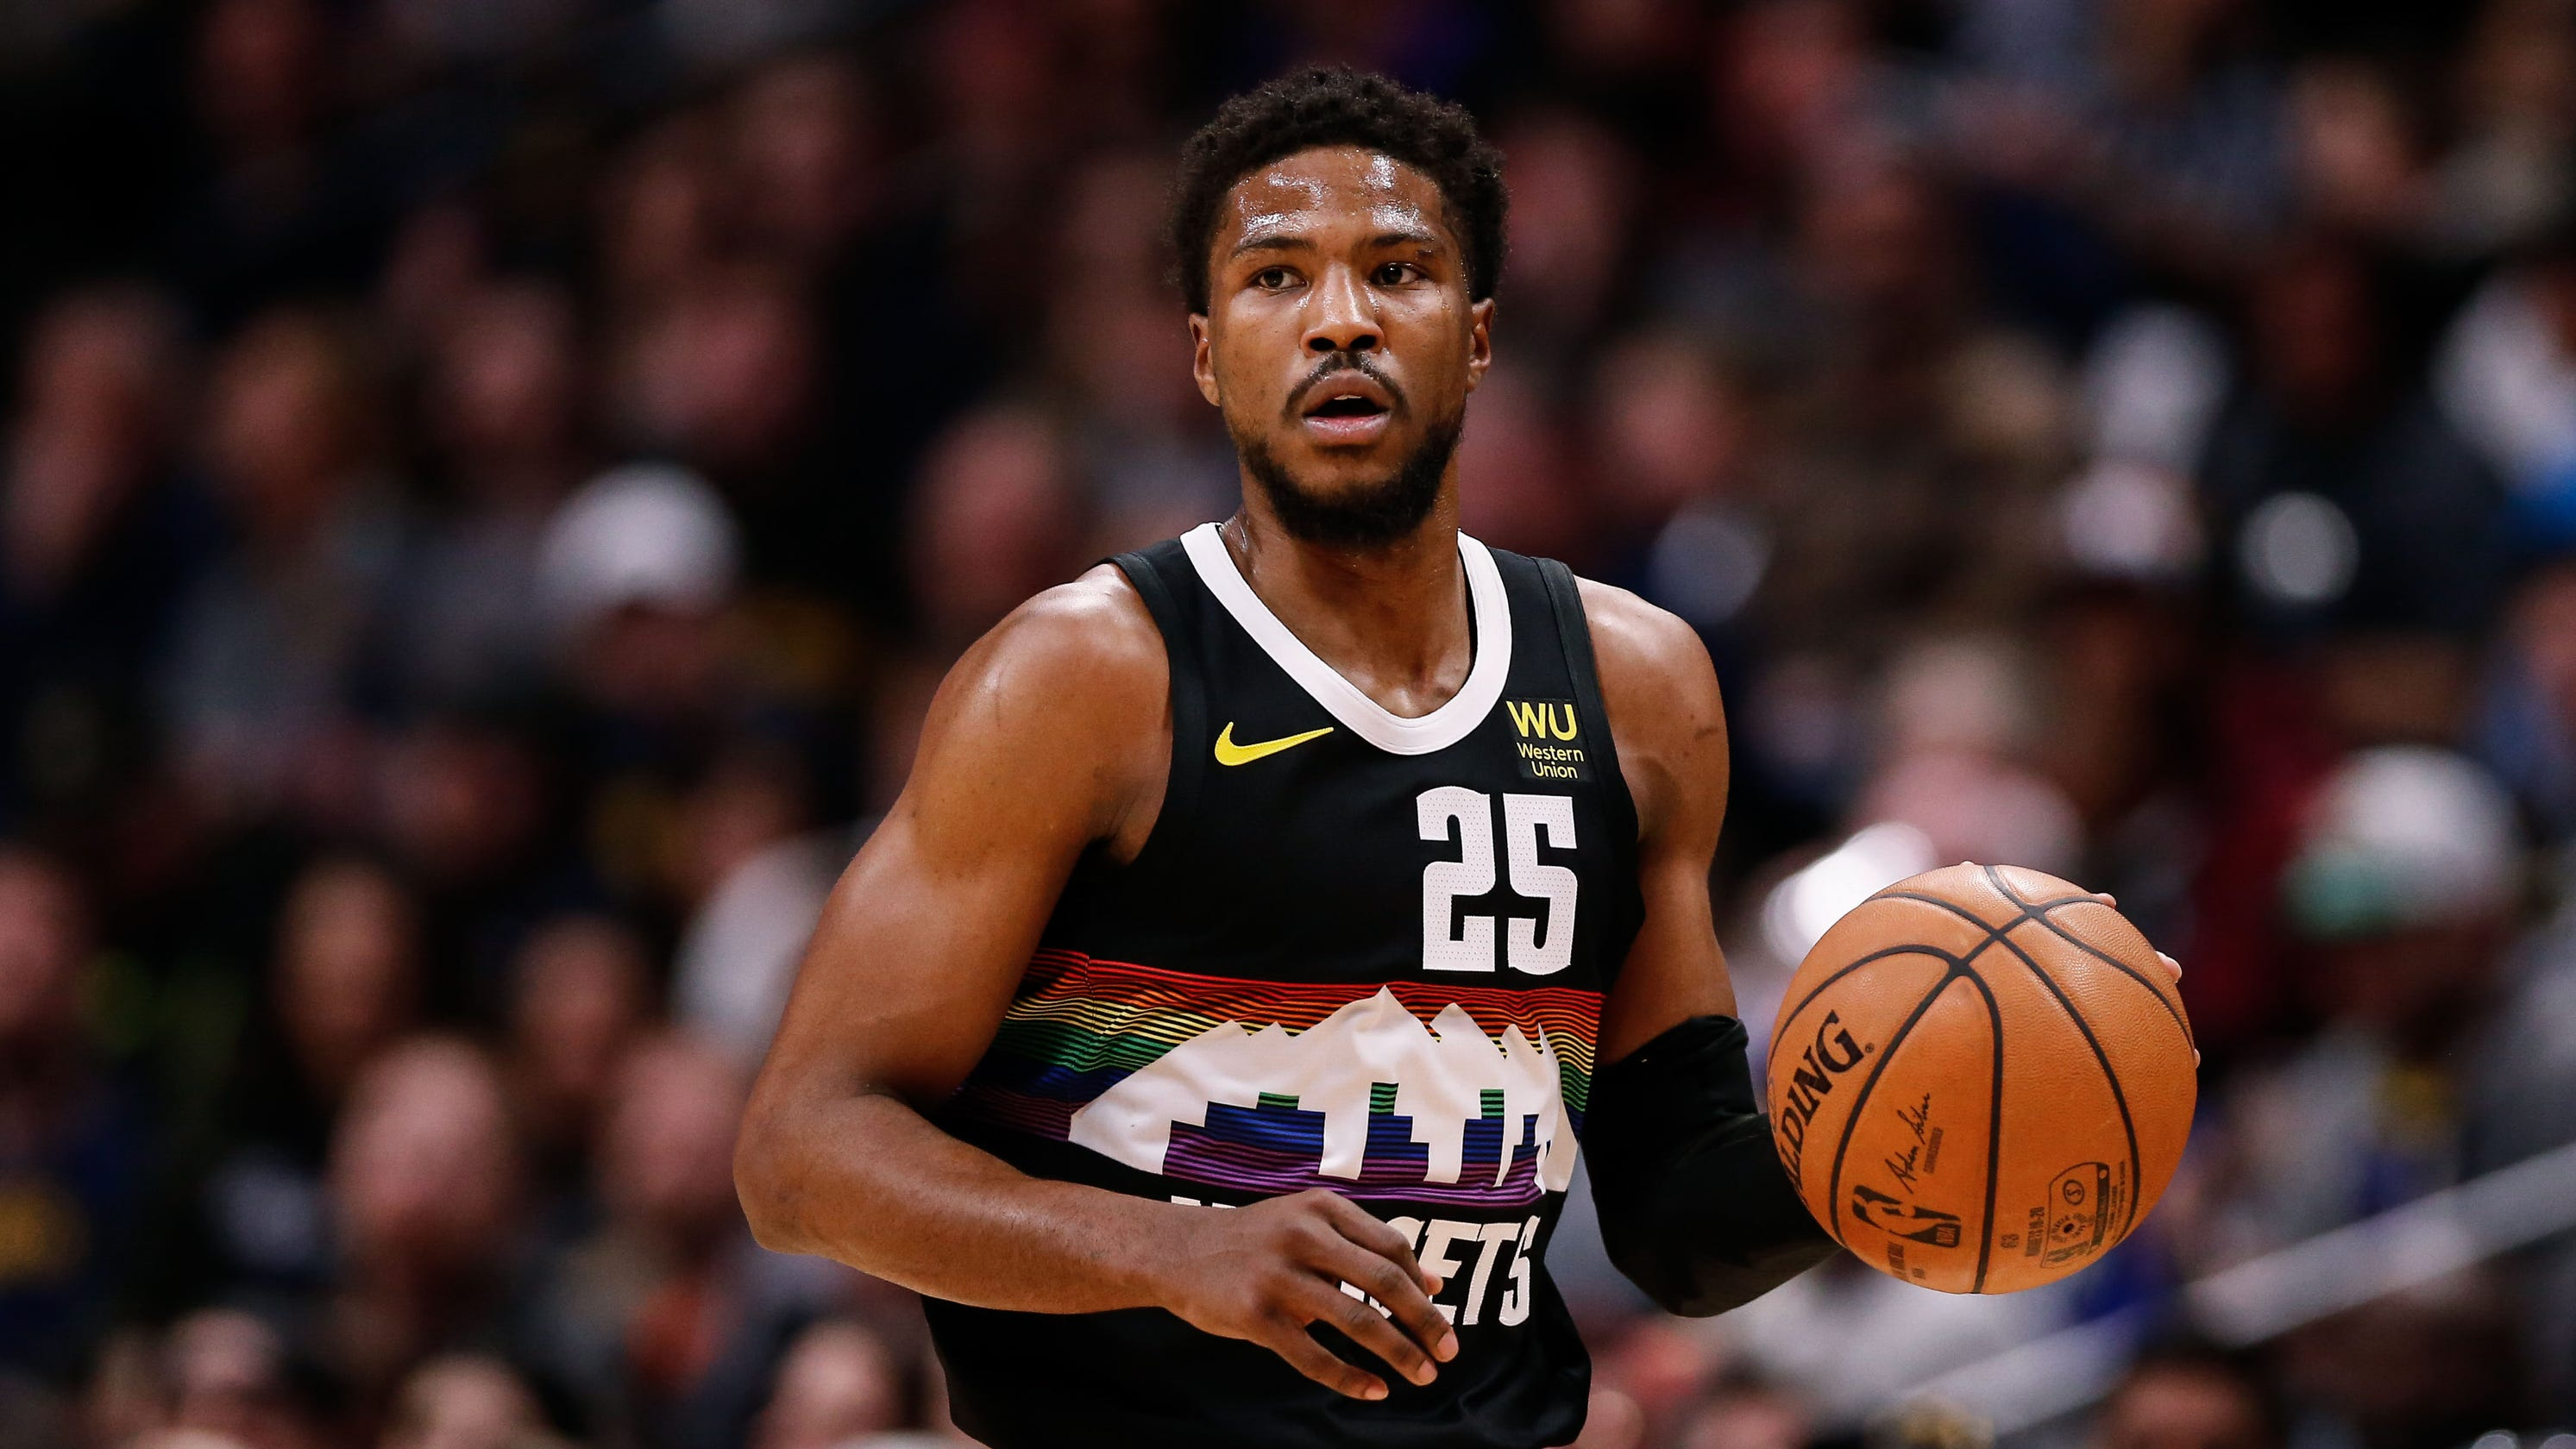 Timberwolves guard Malik Beasley arrested on marijuana and stolen property charges